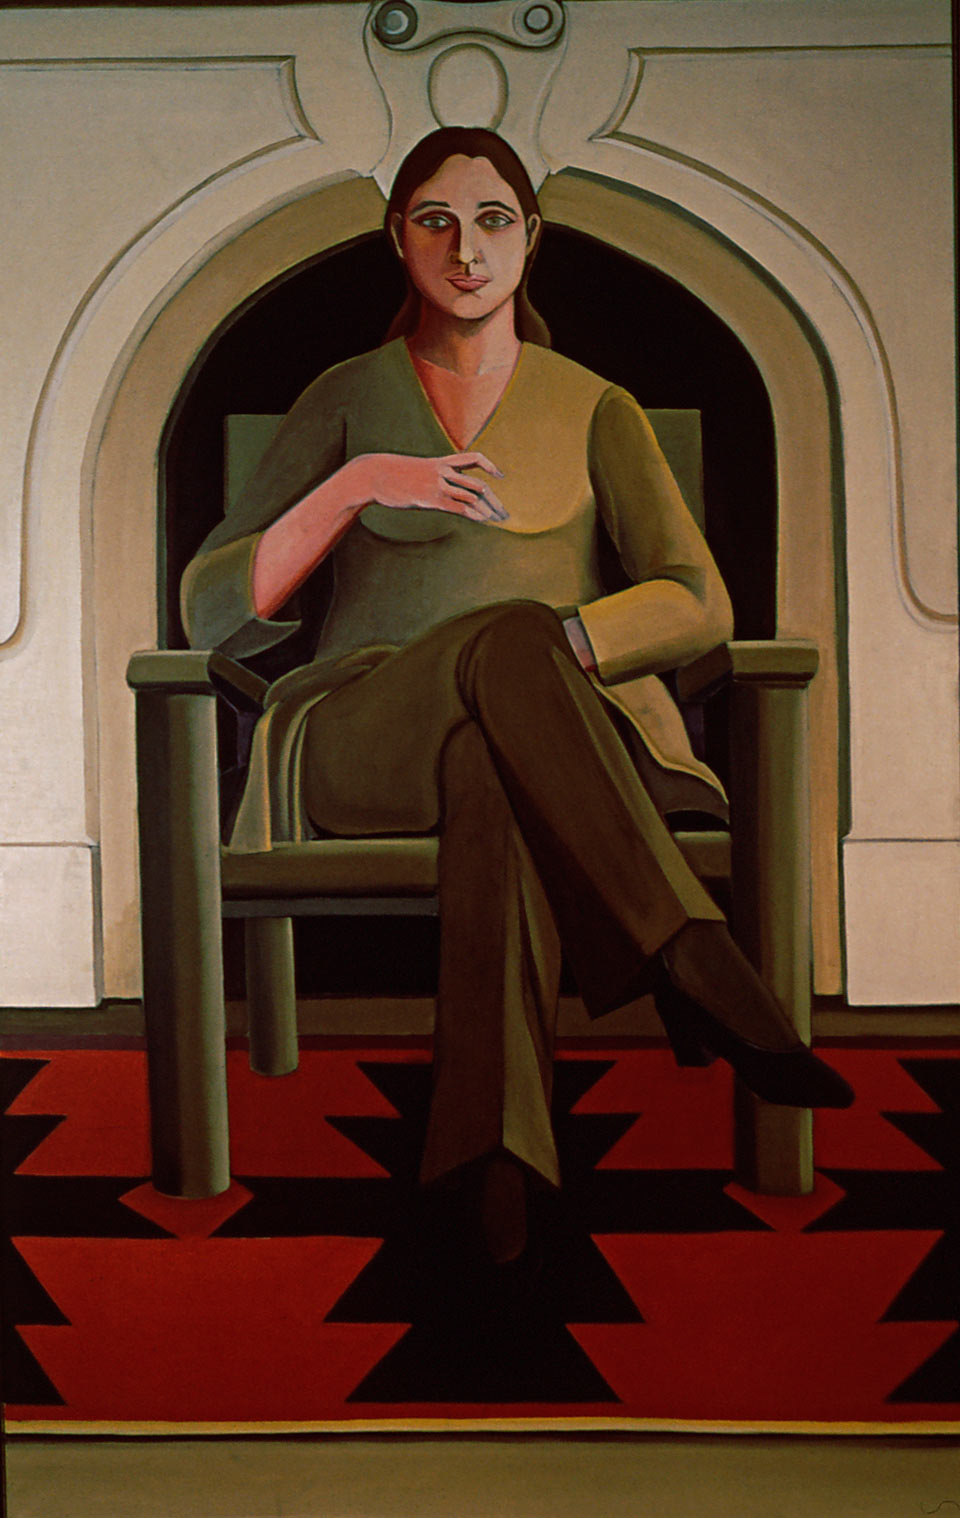 Self Portrait New York Fireplace by Ethel Fisher, 1969, oil on linen, 68 x 41 inches, twentieth century figure painting.